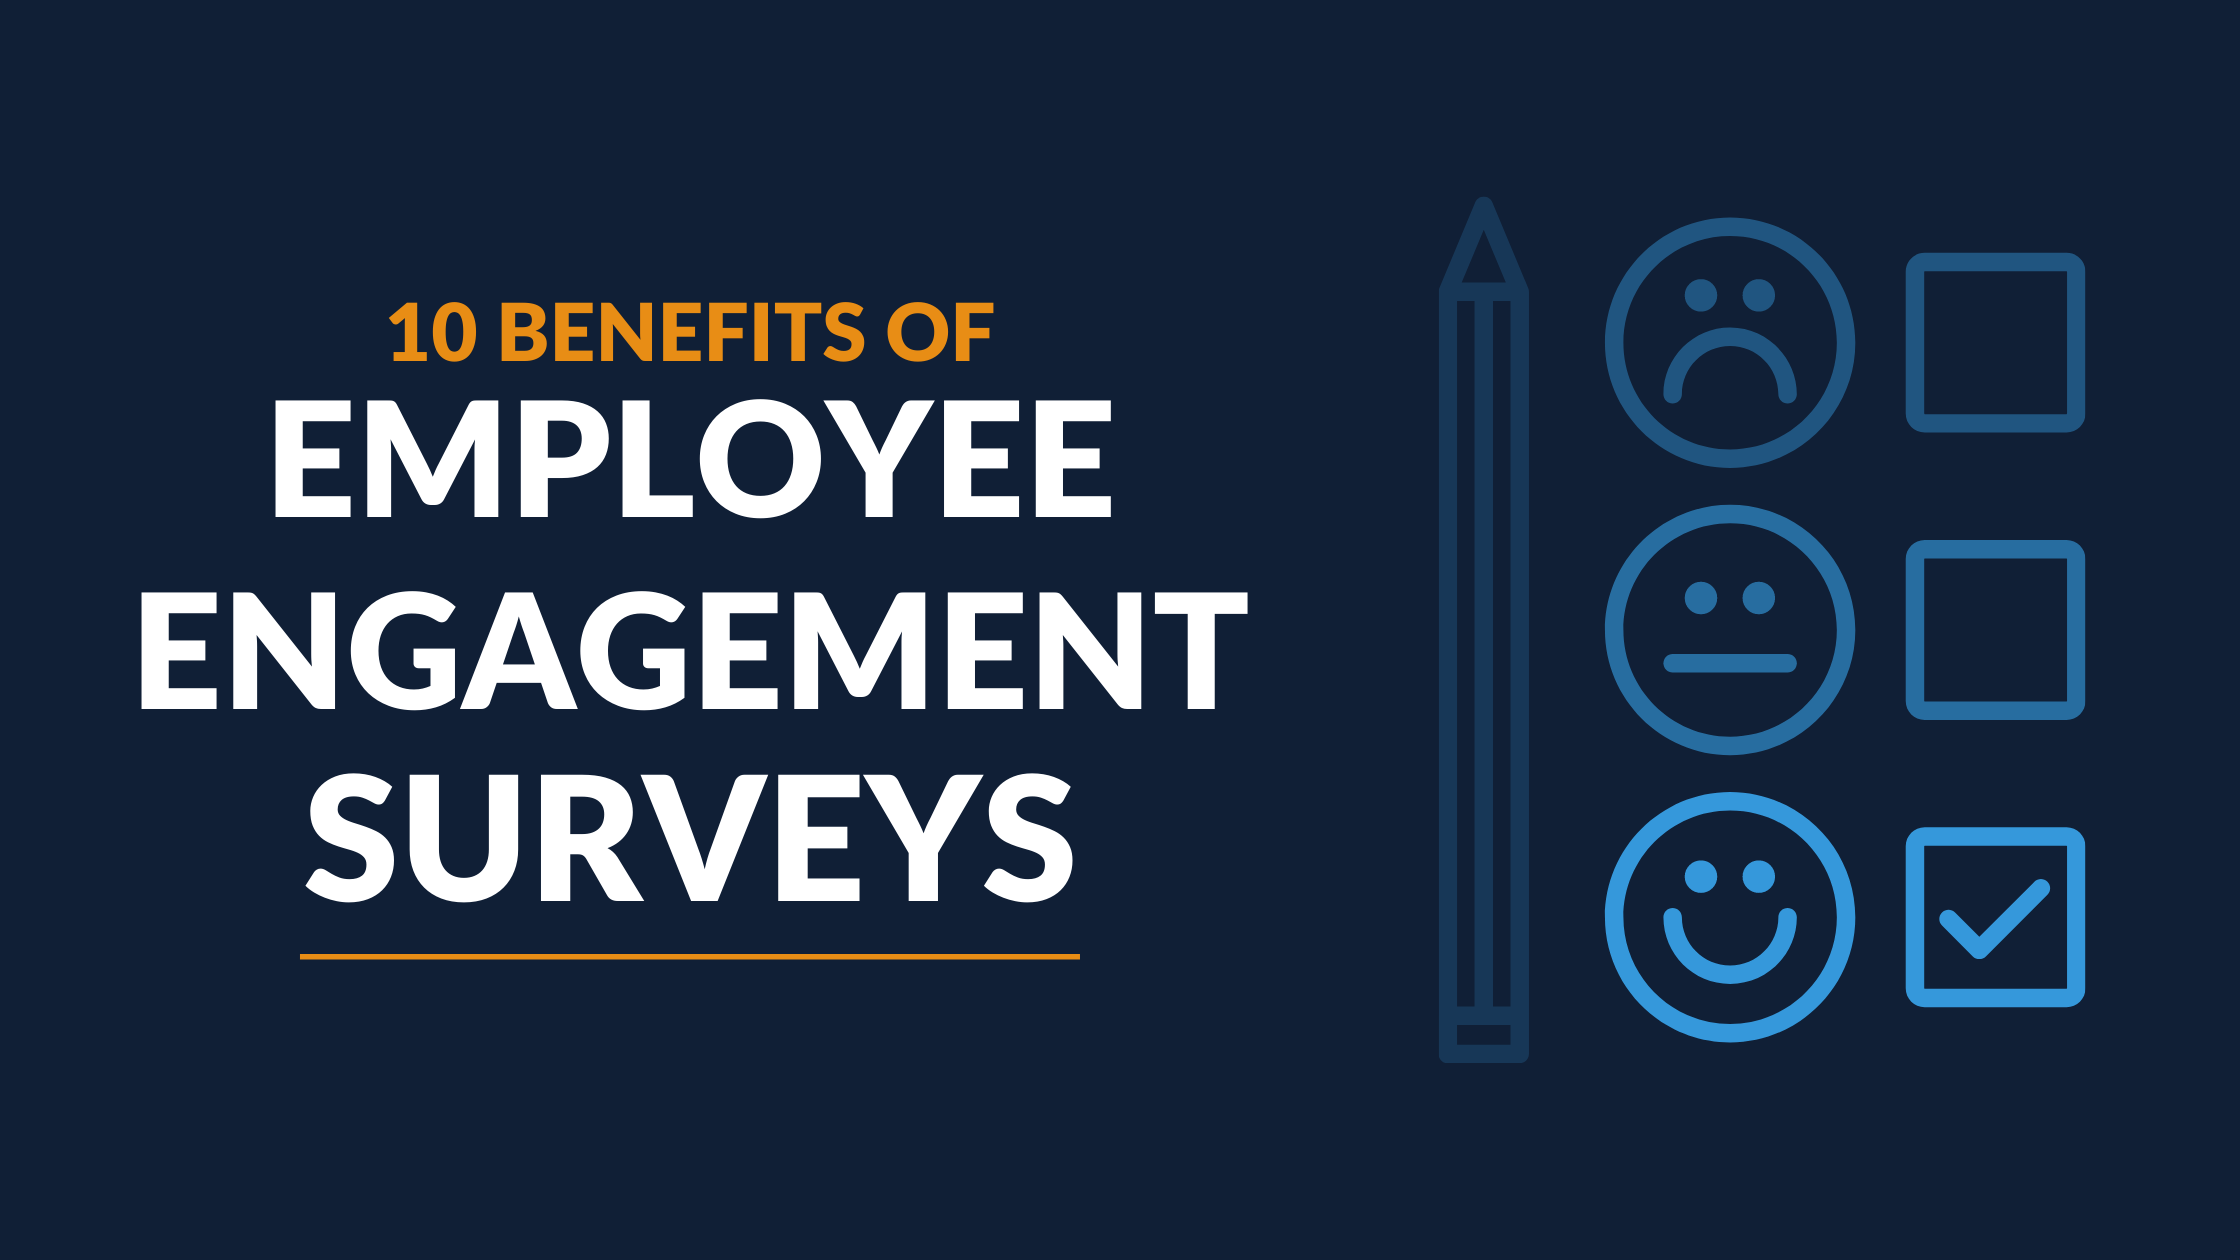 10 Benefits of Employee Engagement Surveys